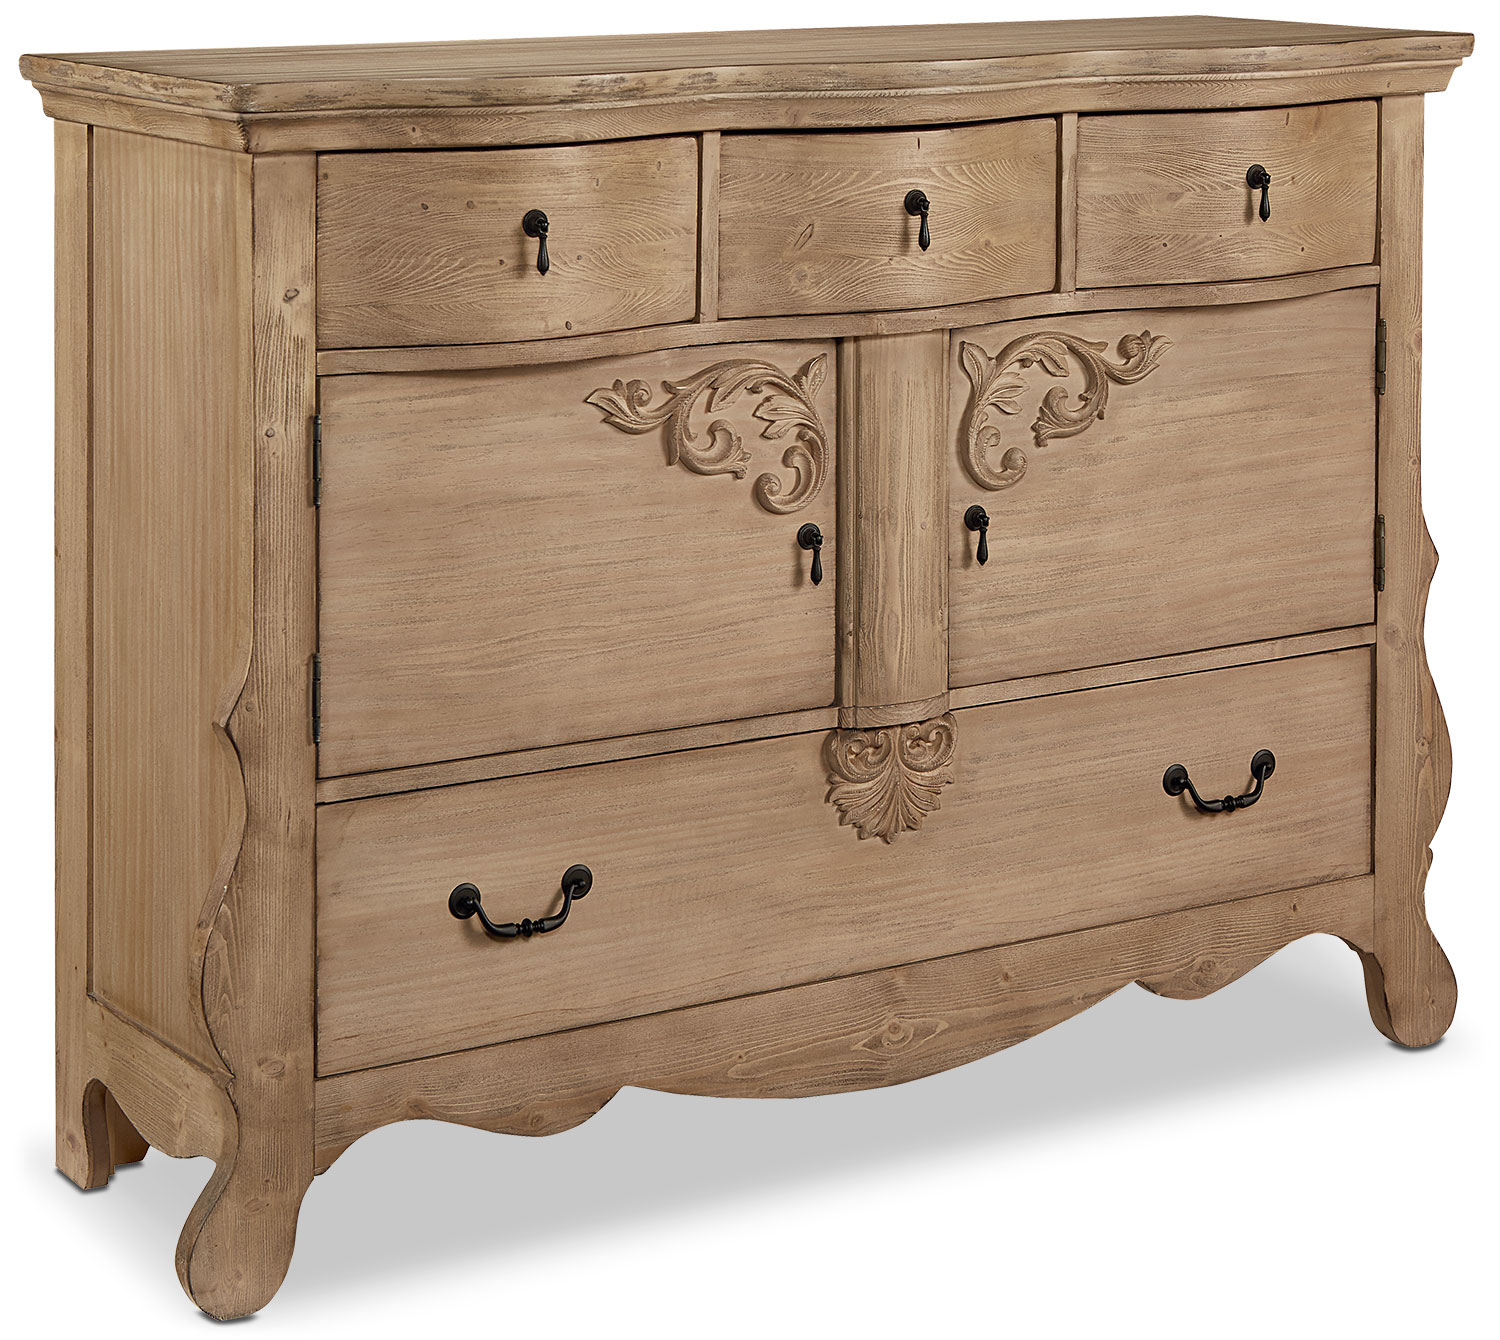 Golden Era Sideboard Chest - Wheat